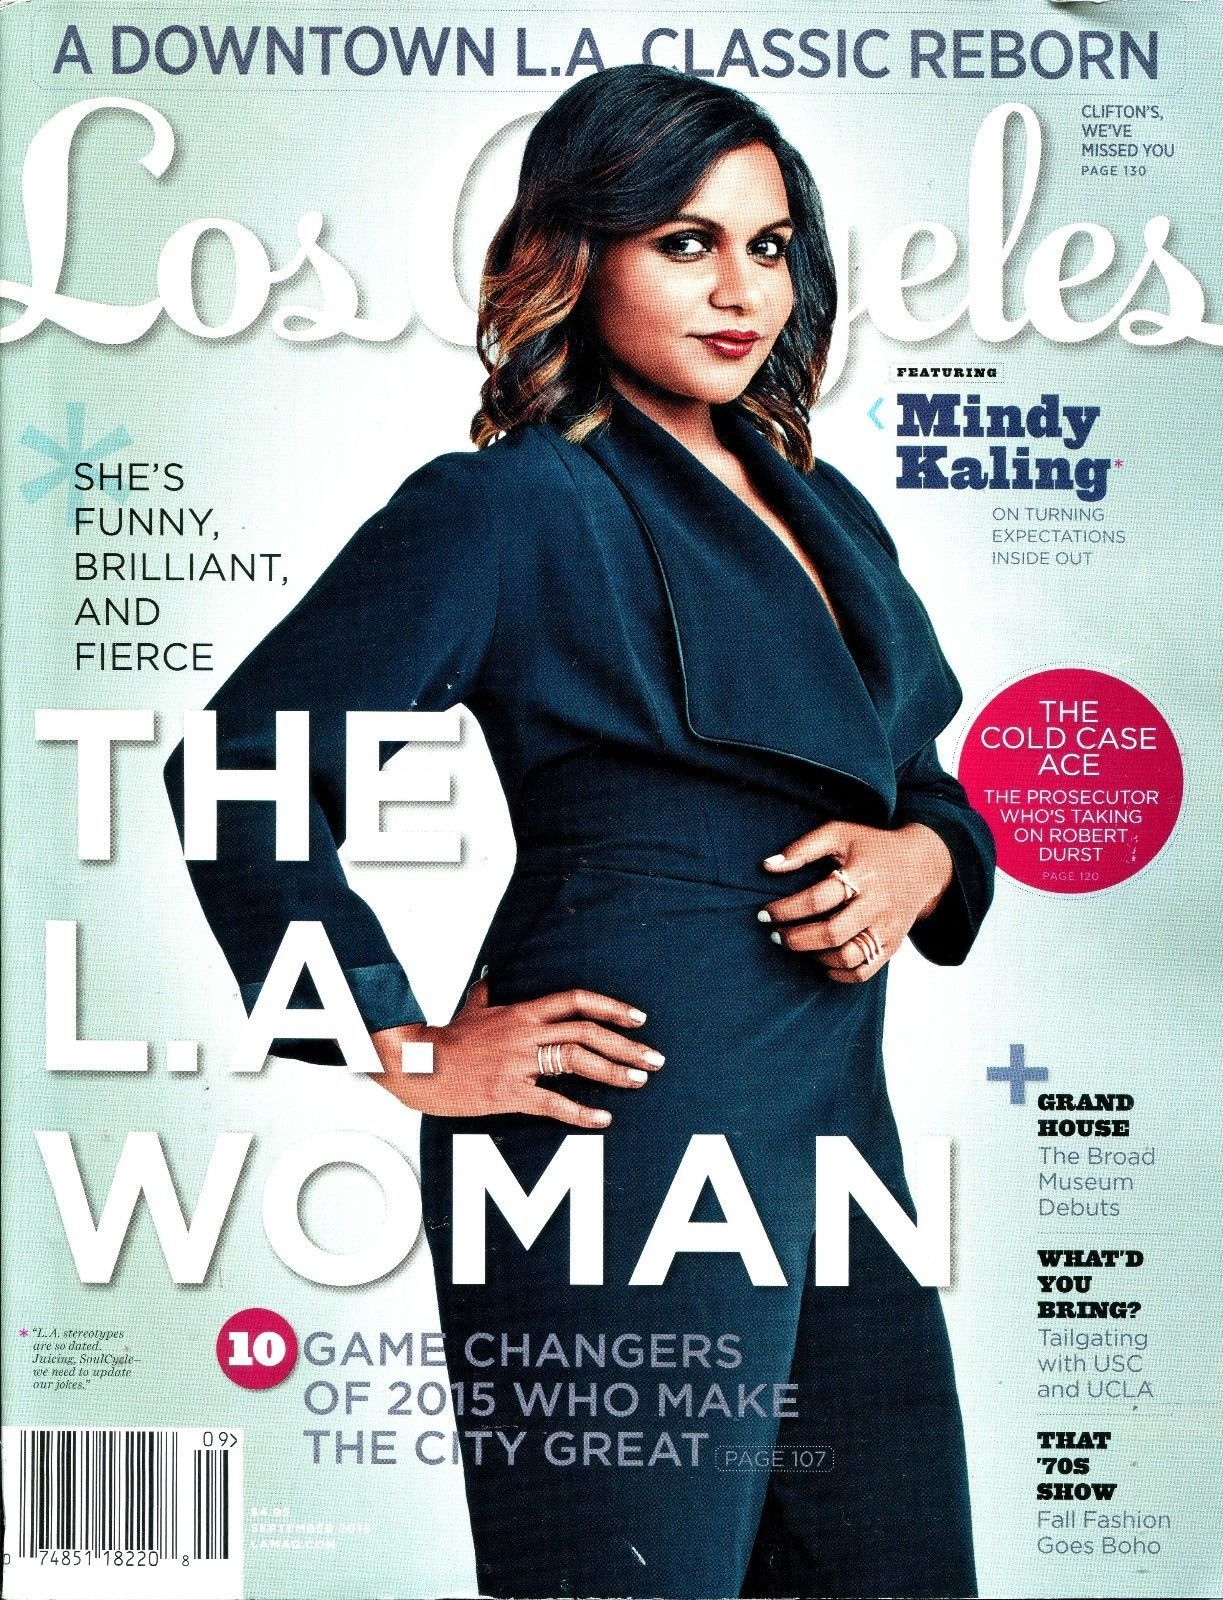 Mindy Kaling Cover. September 2015. Los Angeles Magazine. The L A Woman. Do not miss out on this deal. BUY NOW! Make this item yours now! | eBay!